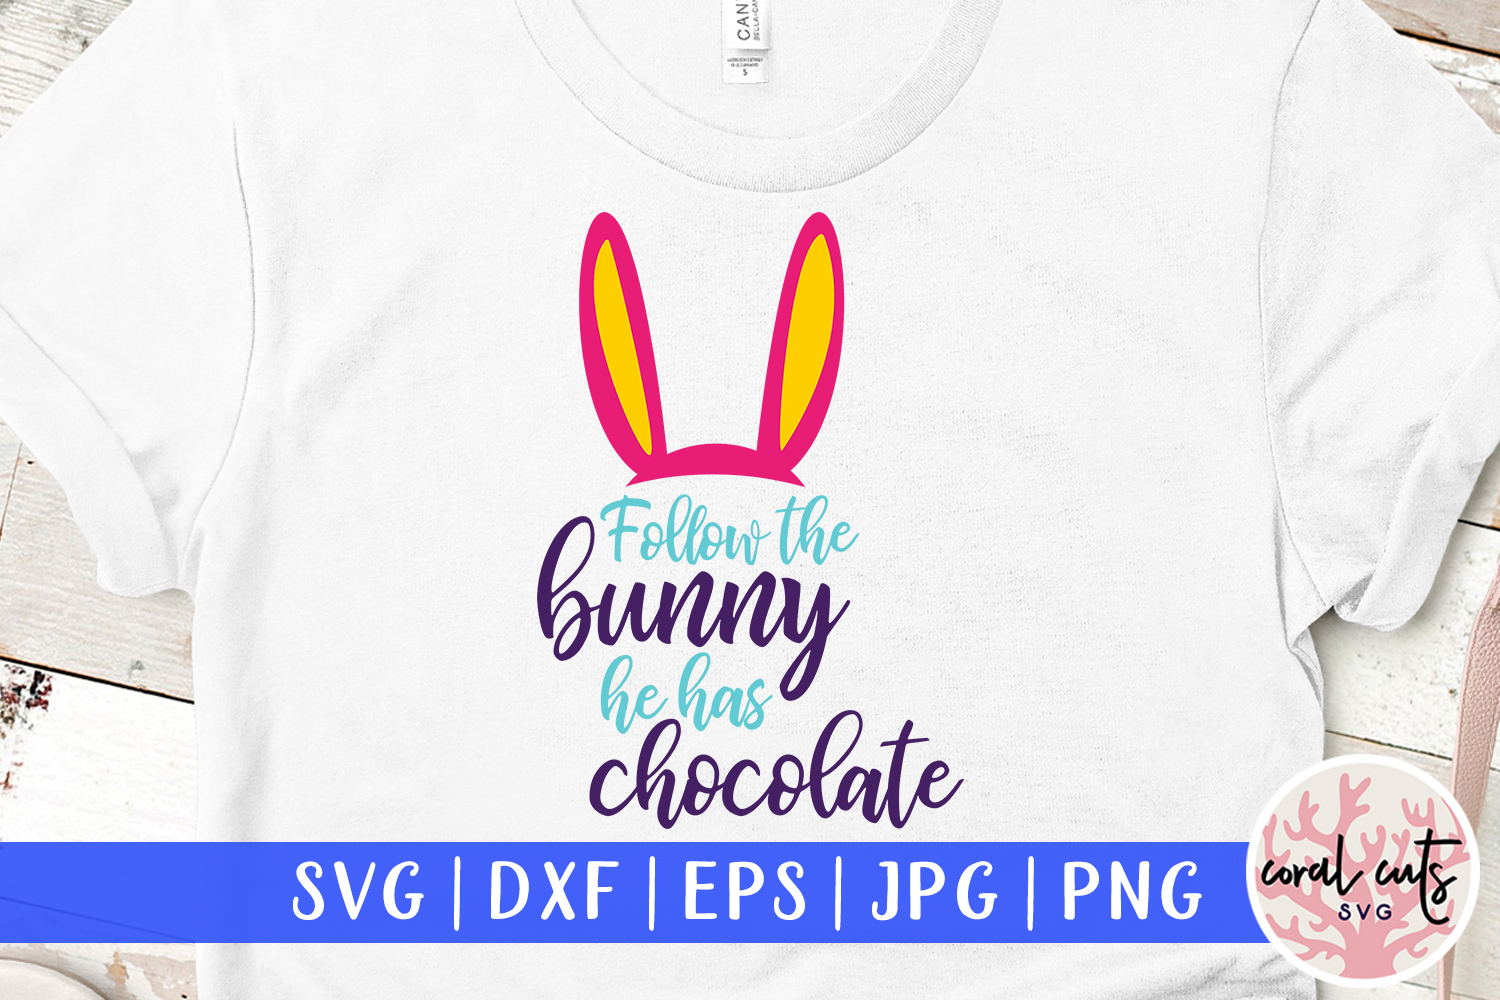 Download Free Follow The Bunny He Has Chocolate Graphic By Coralcutssvg for Cricut Explore, Silhouette and other cutting machines.